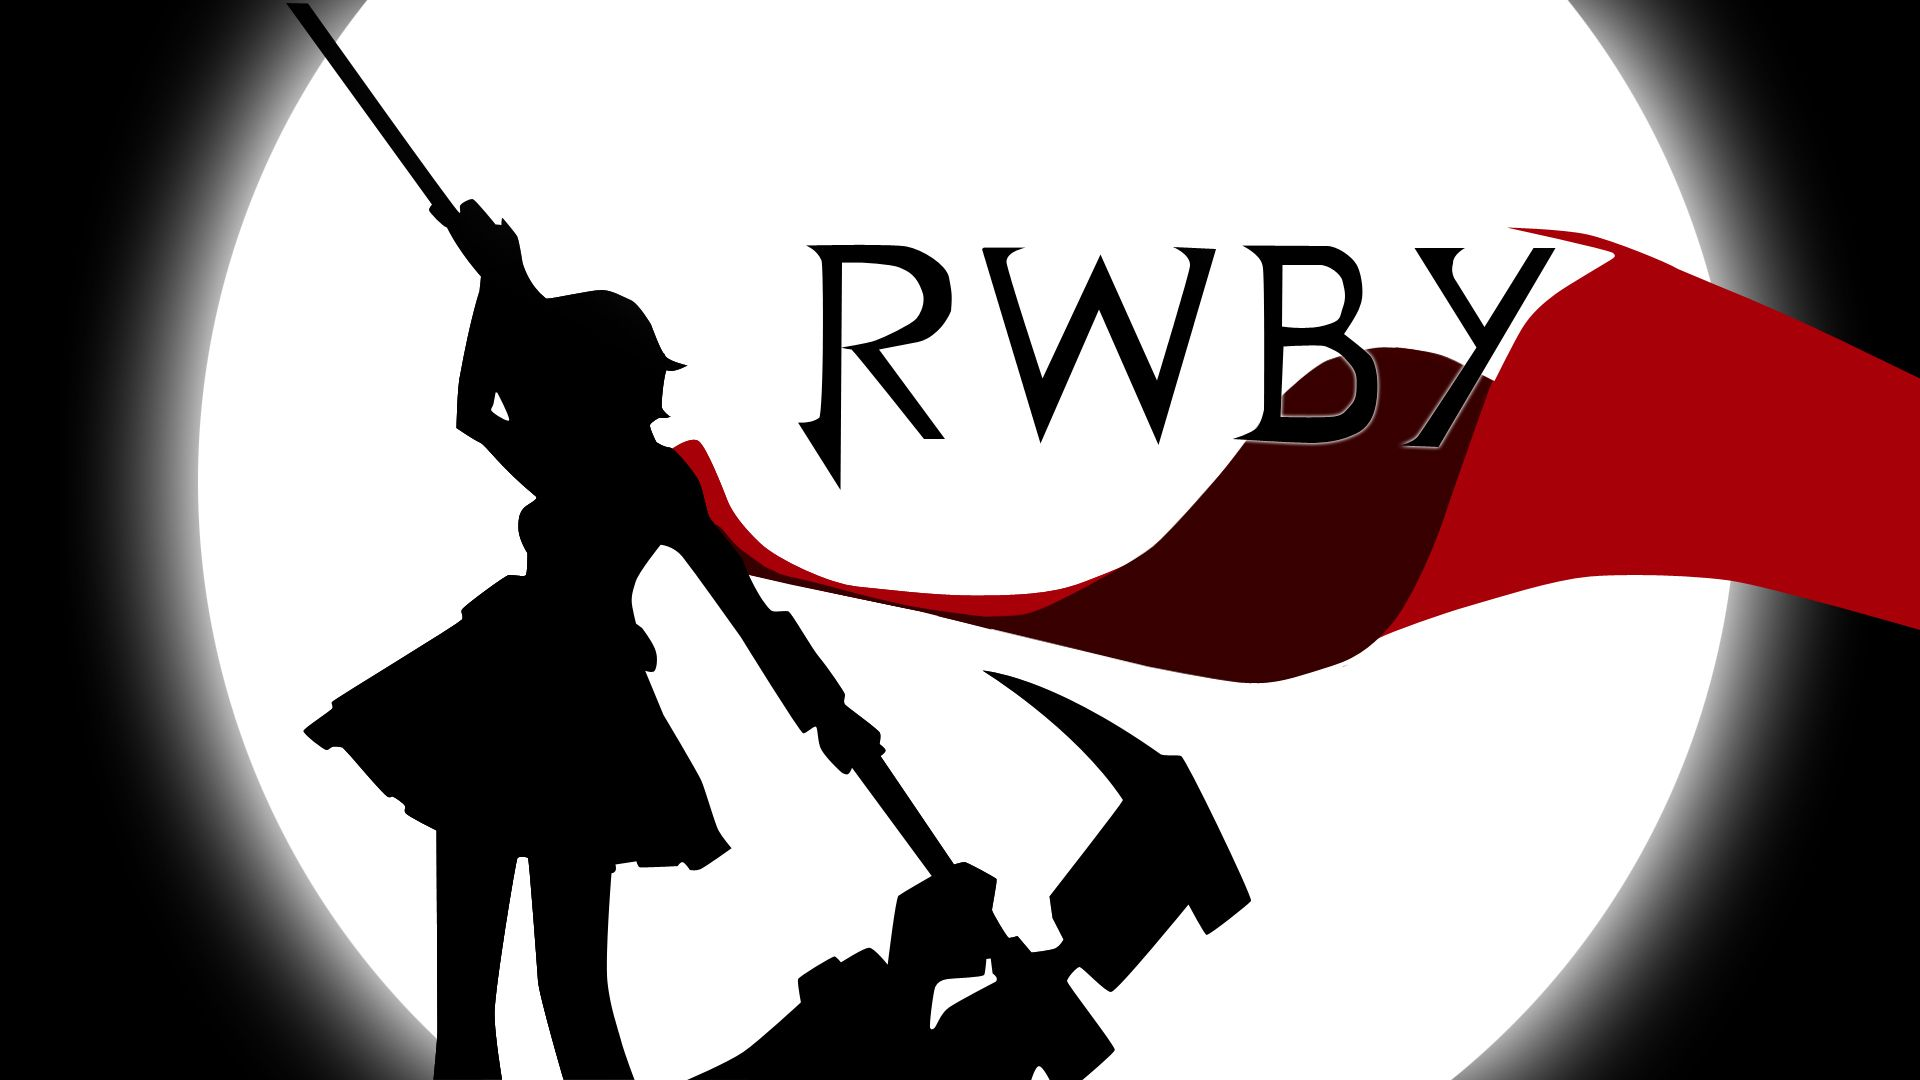 RWBY Wallpaper by on